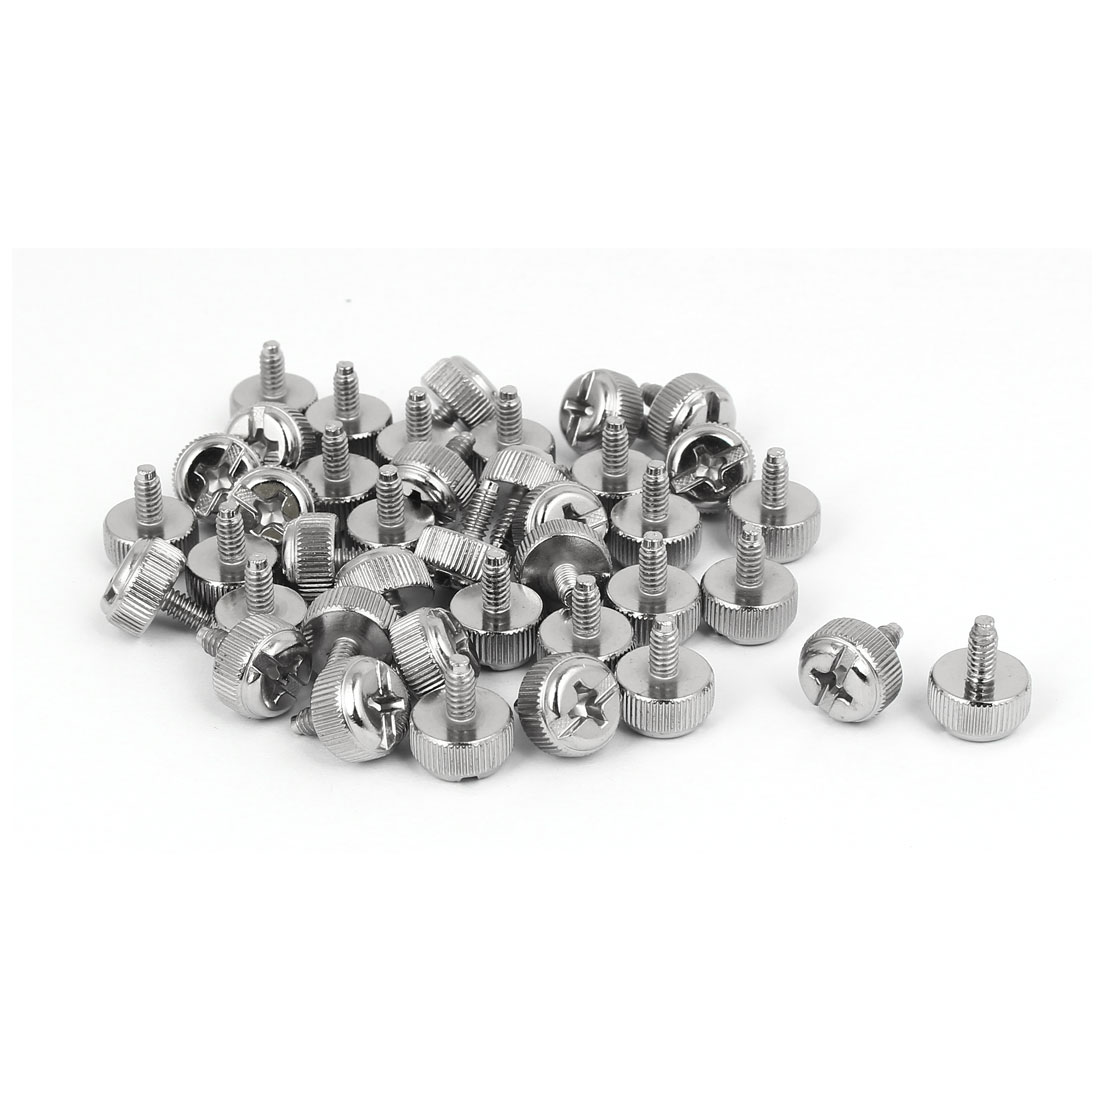 6#-32 UNC Metal Knurled Phillips Head Thumb Screw 40pcs for Computer PC Case